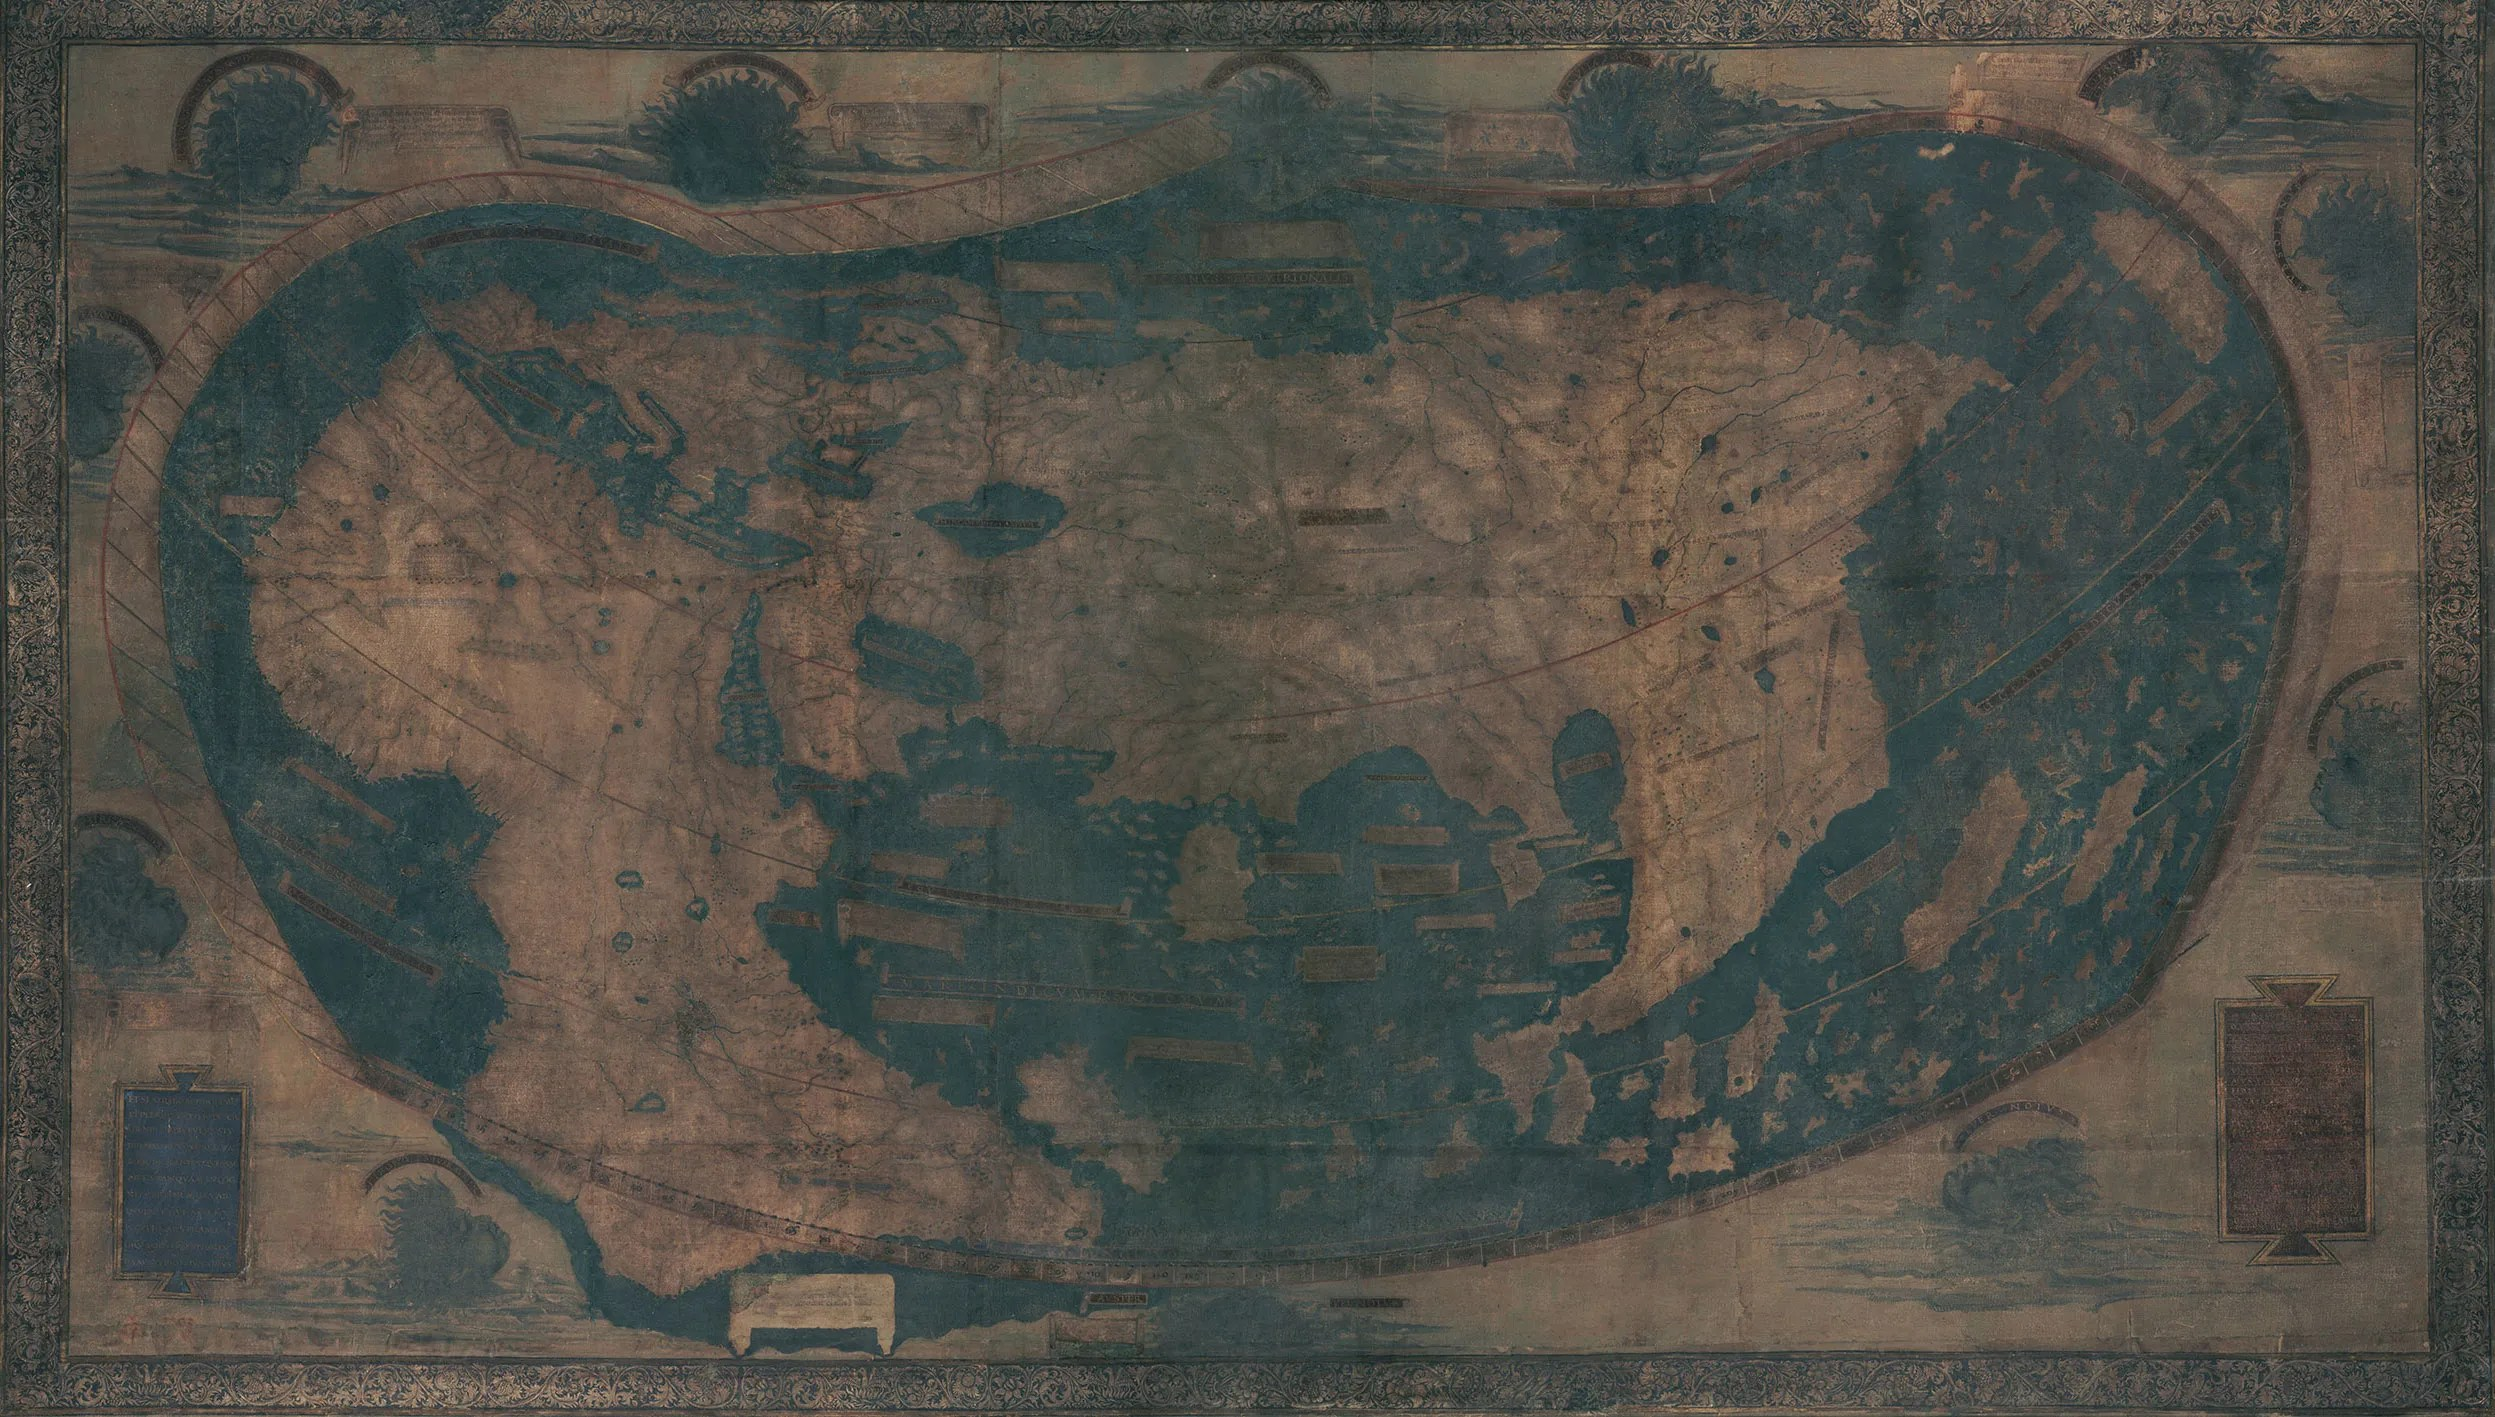 Uncovering Hidden Text On A 500 Year Old Map That Guided